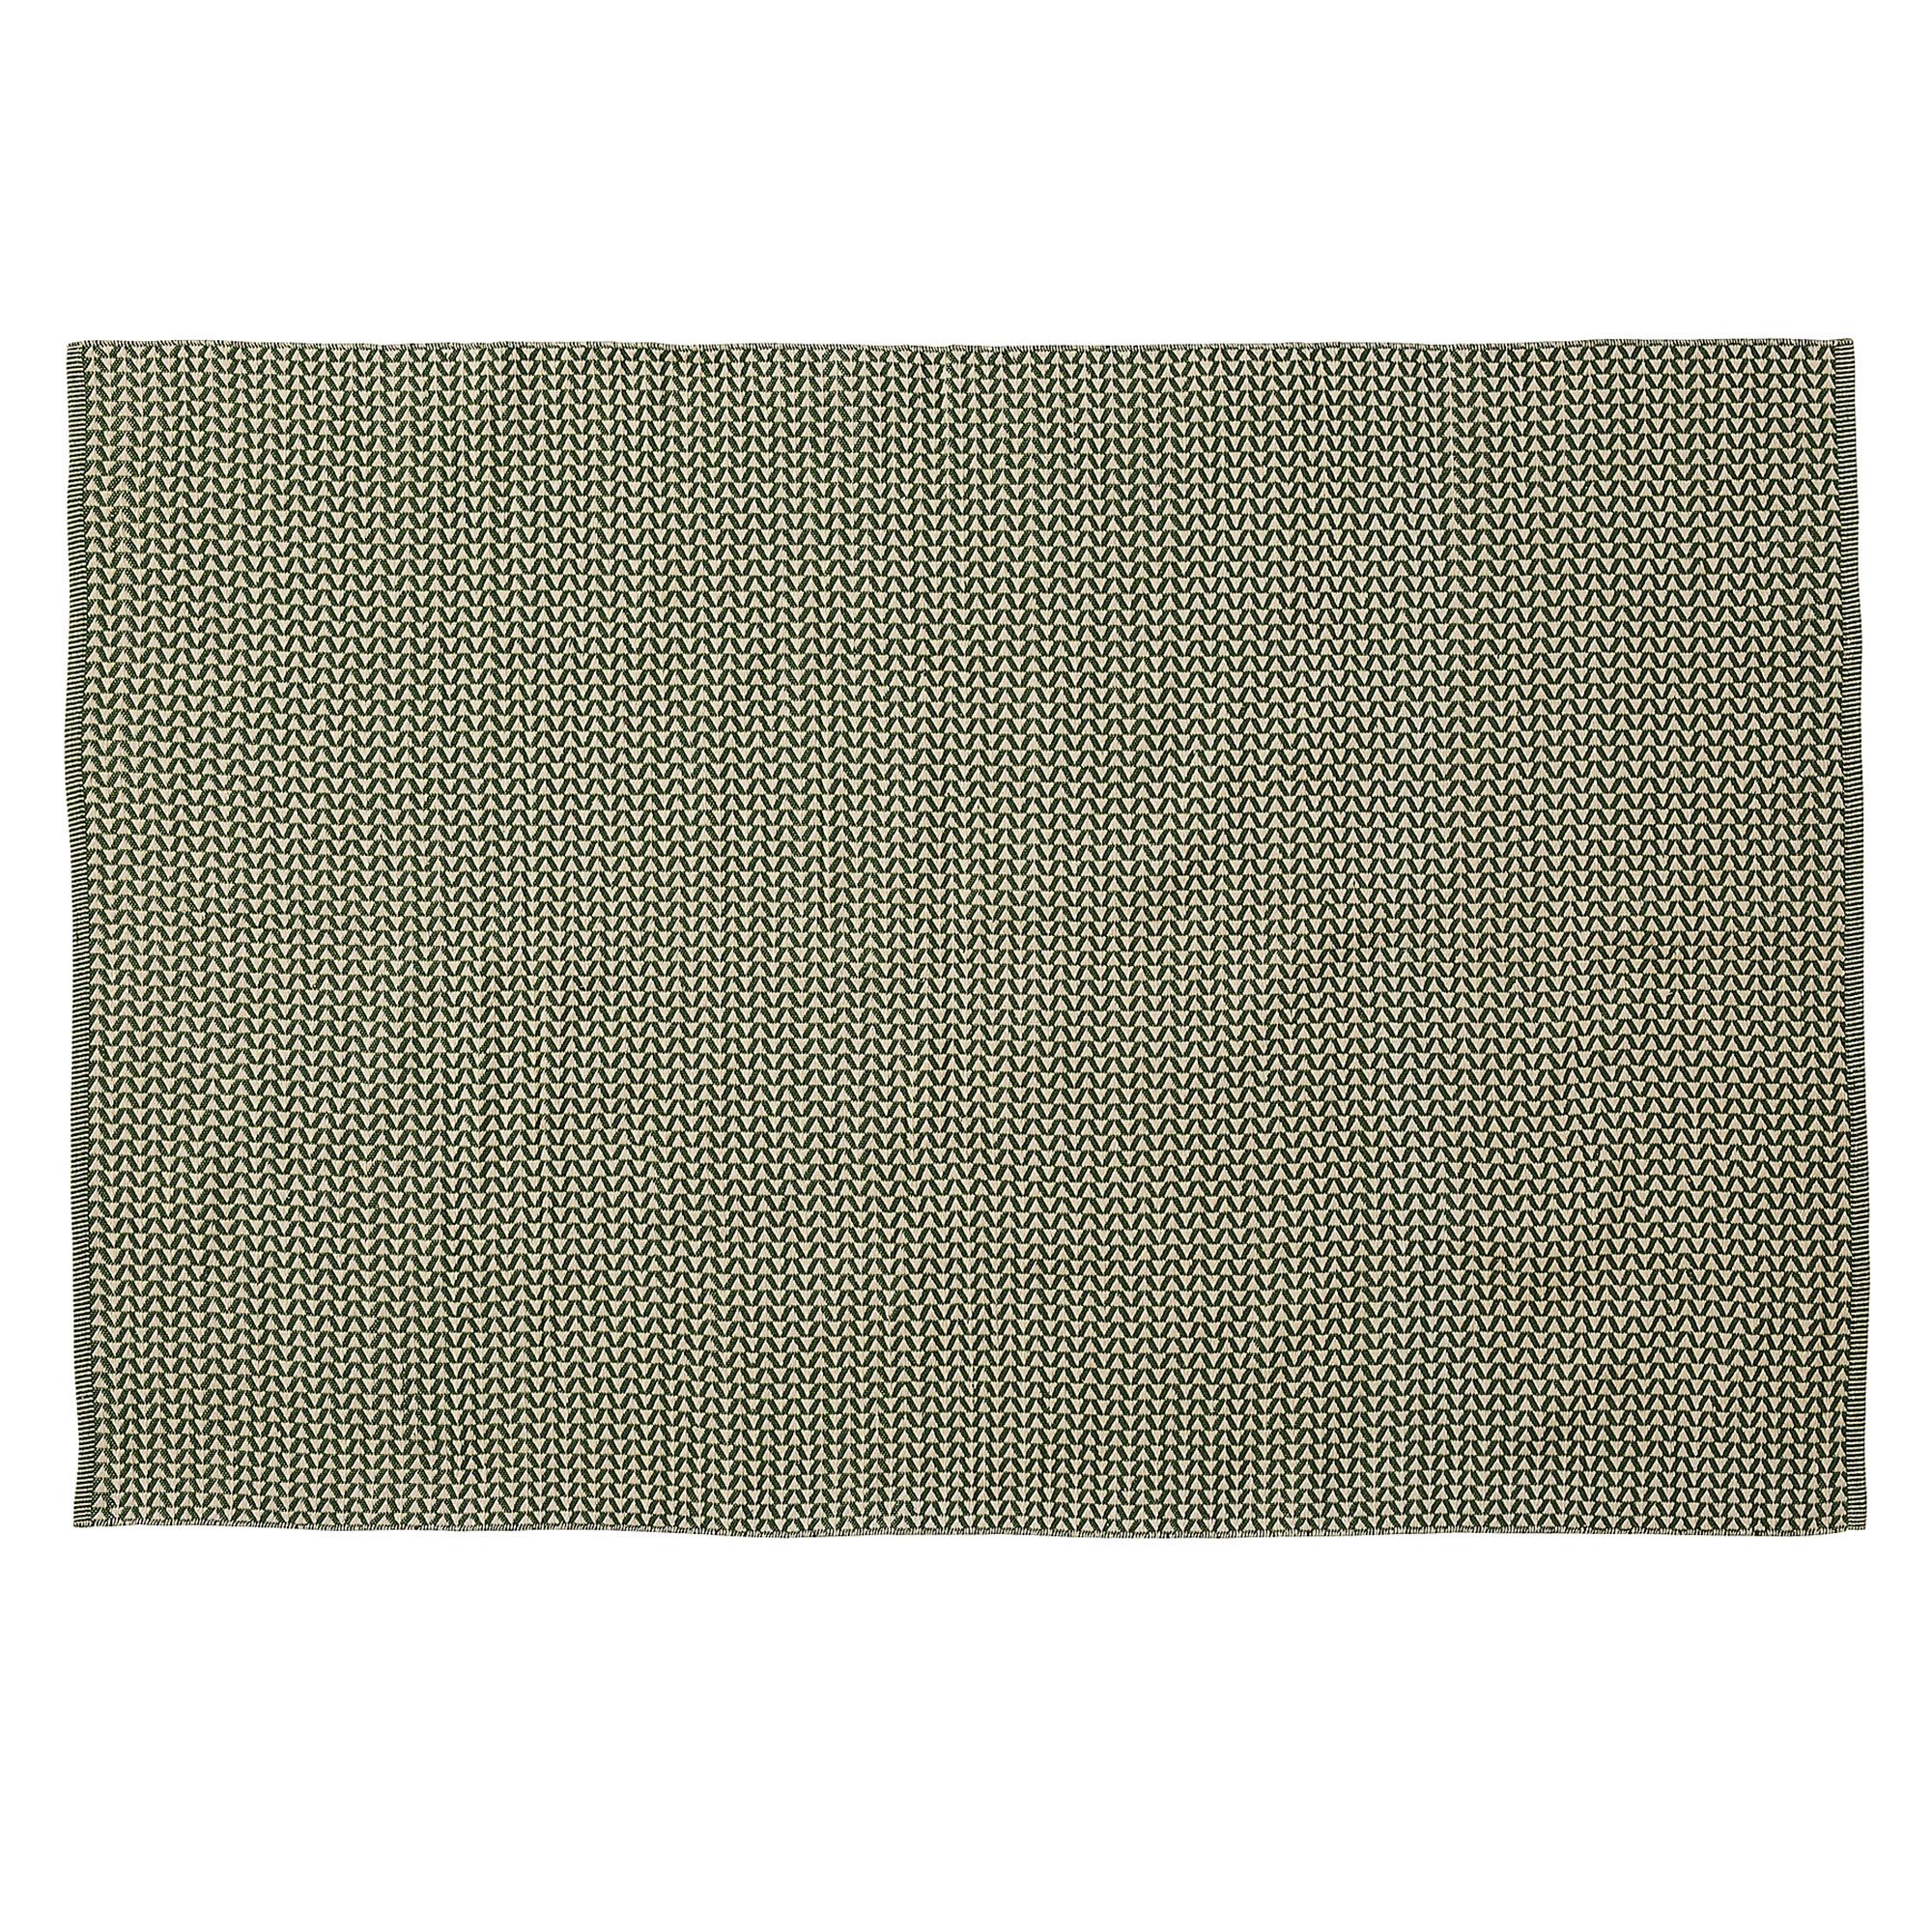 Kave home - tapis atmosphere 130 x 190 cm vert